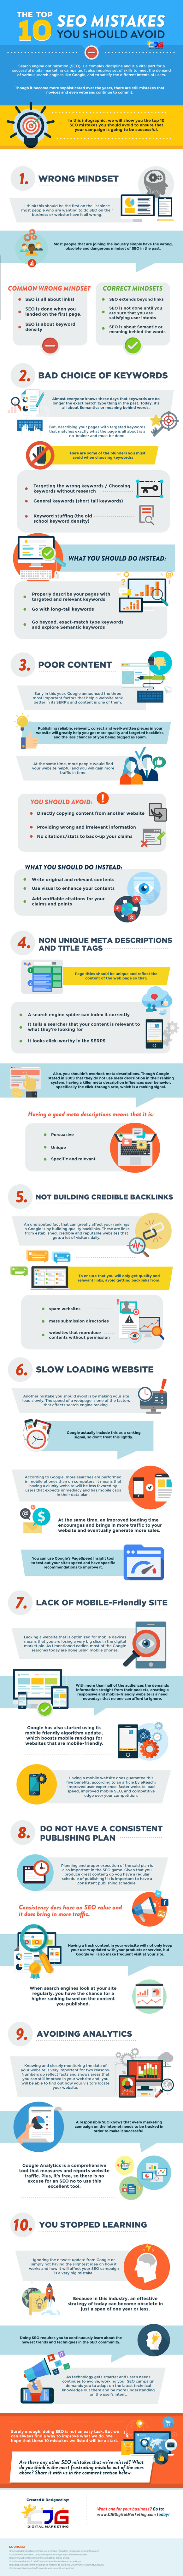 the-top-10-seo-mistakes-you-should-avoid-infographics